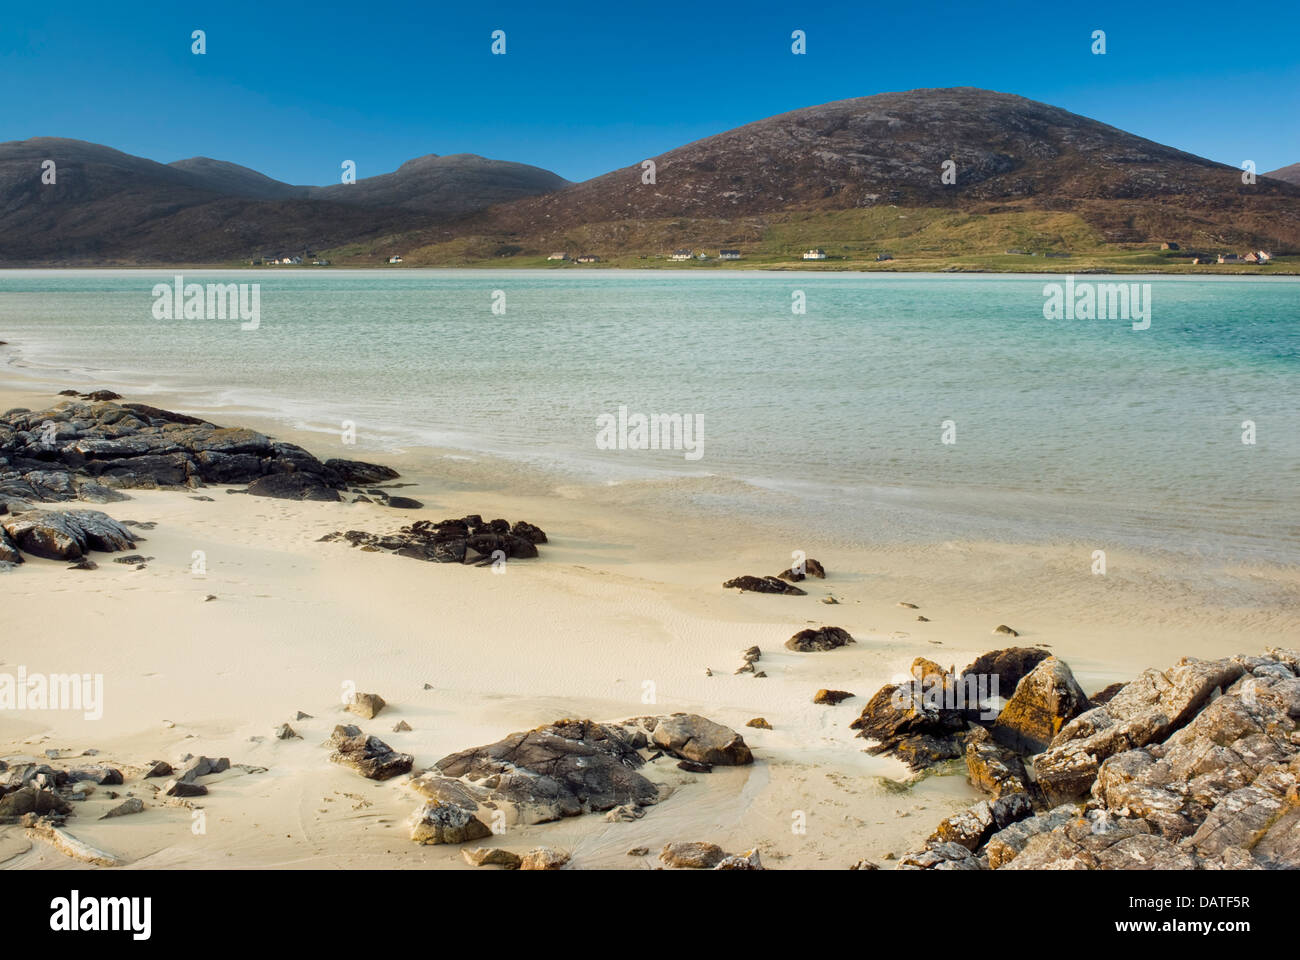 Beach at Luskentyre, looking towards Seilebost, Sound of Taransay, Isle of Harris, Outer Hebrides, Scotland - Stock Image